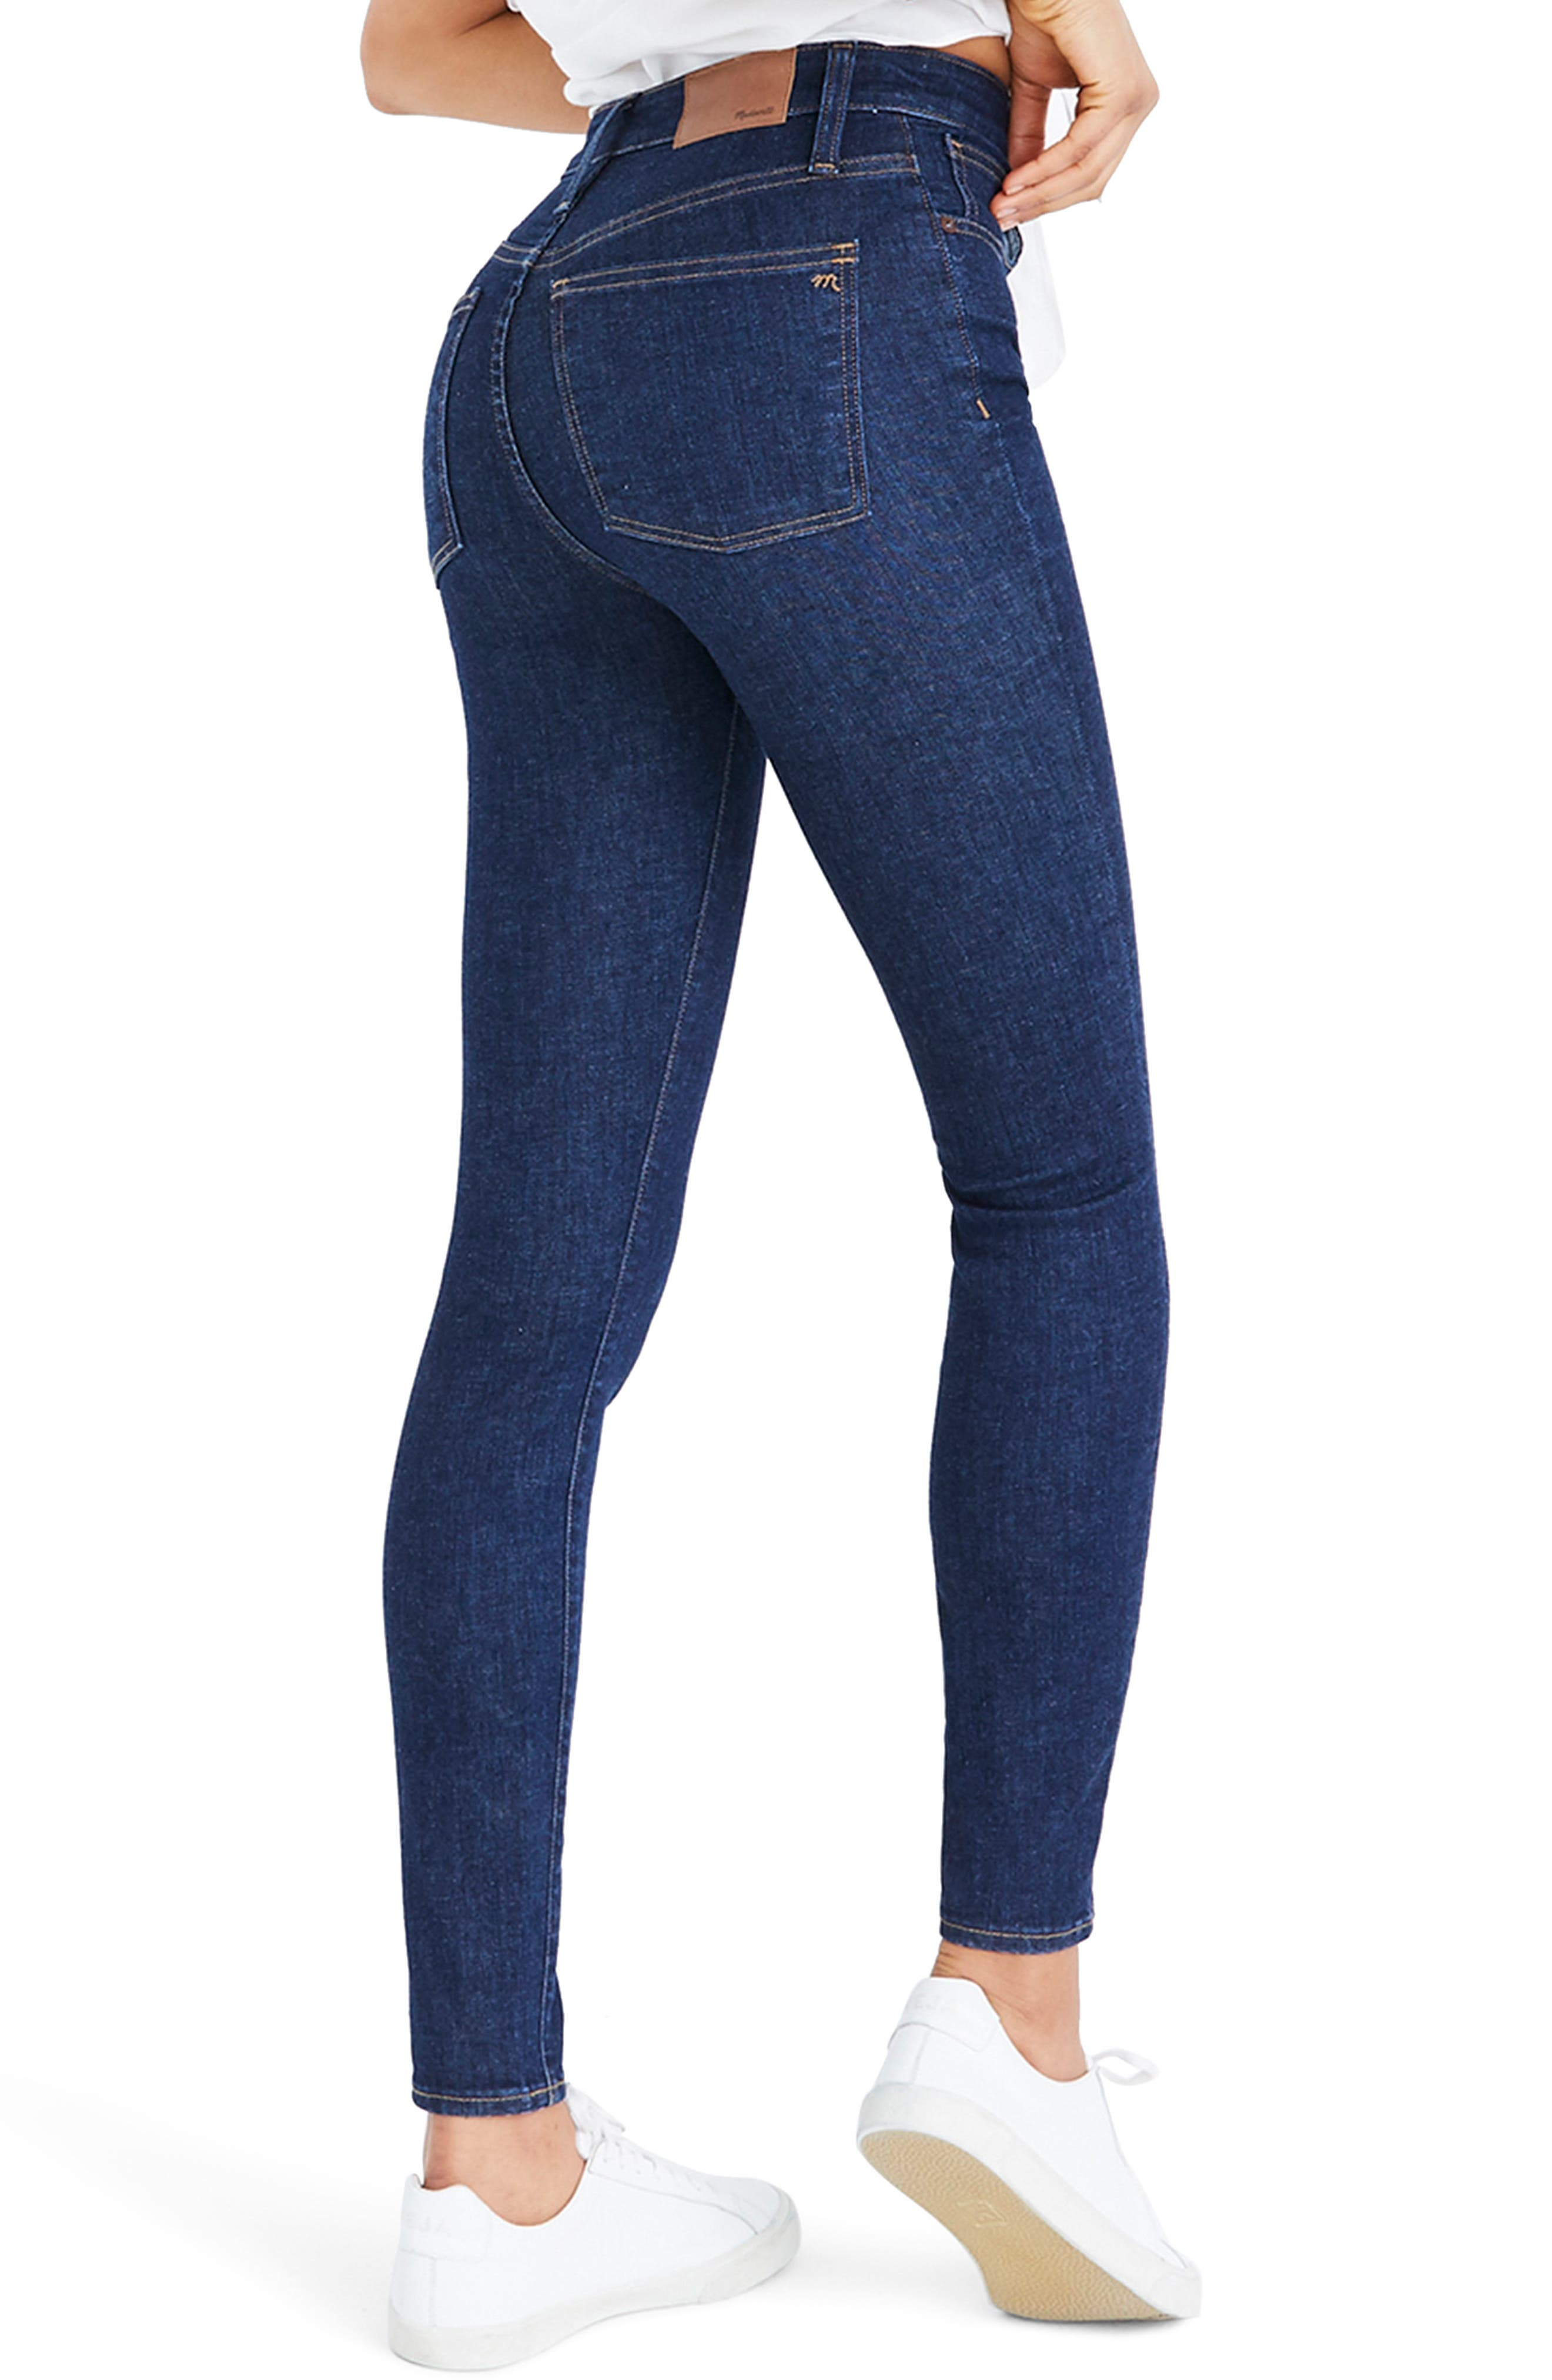 Curvy High Waist Skinny Jeans,                             Alternate thumbnail 3, color,                             LUCILLE WASH